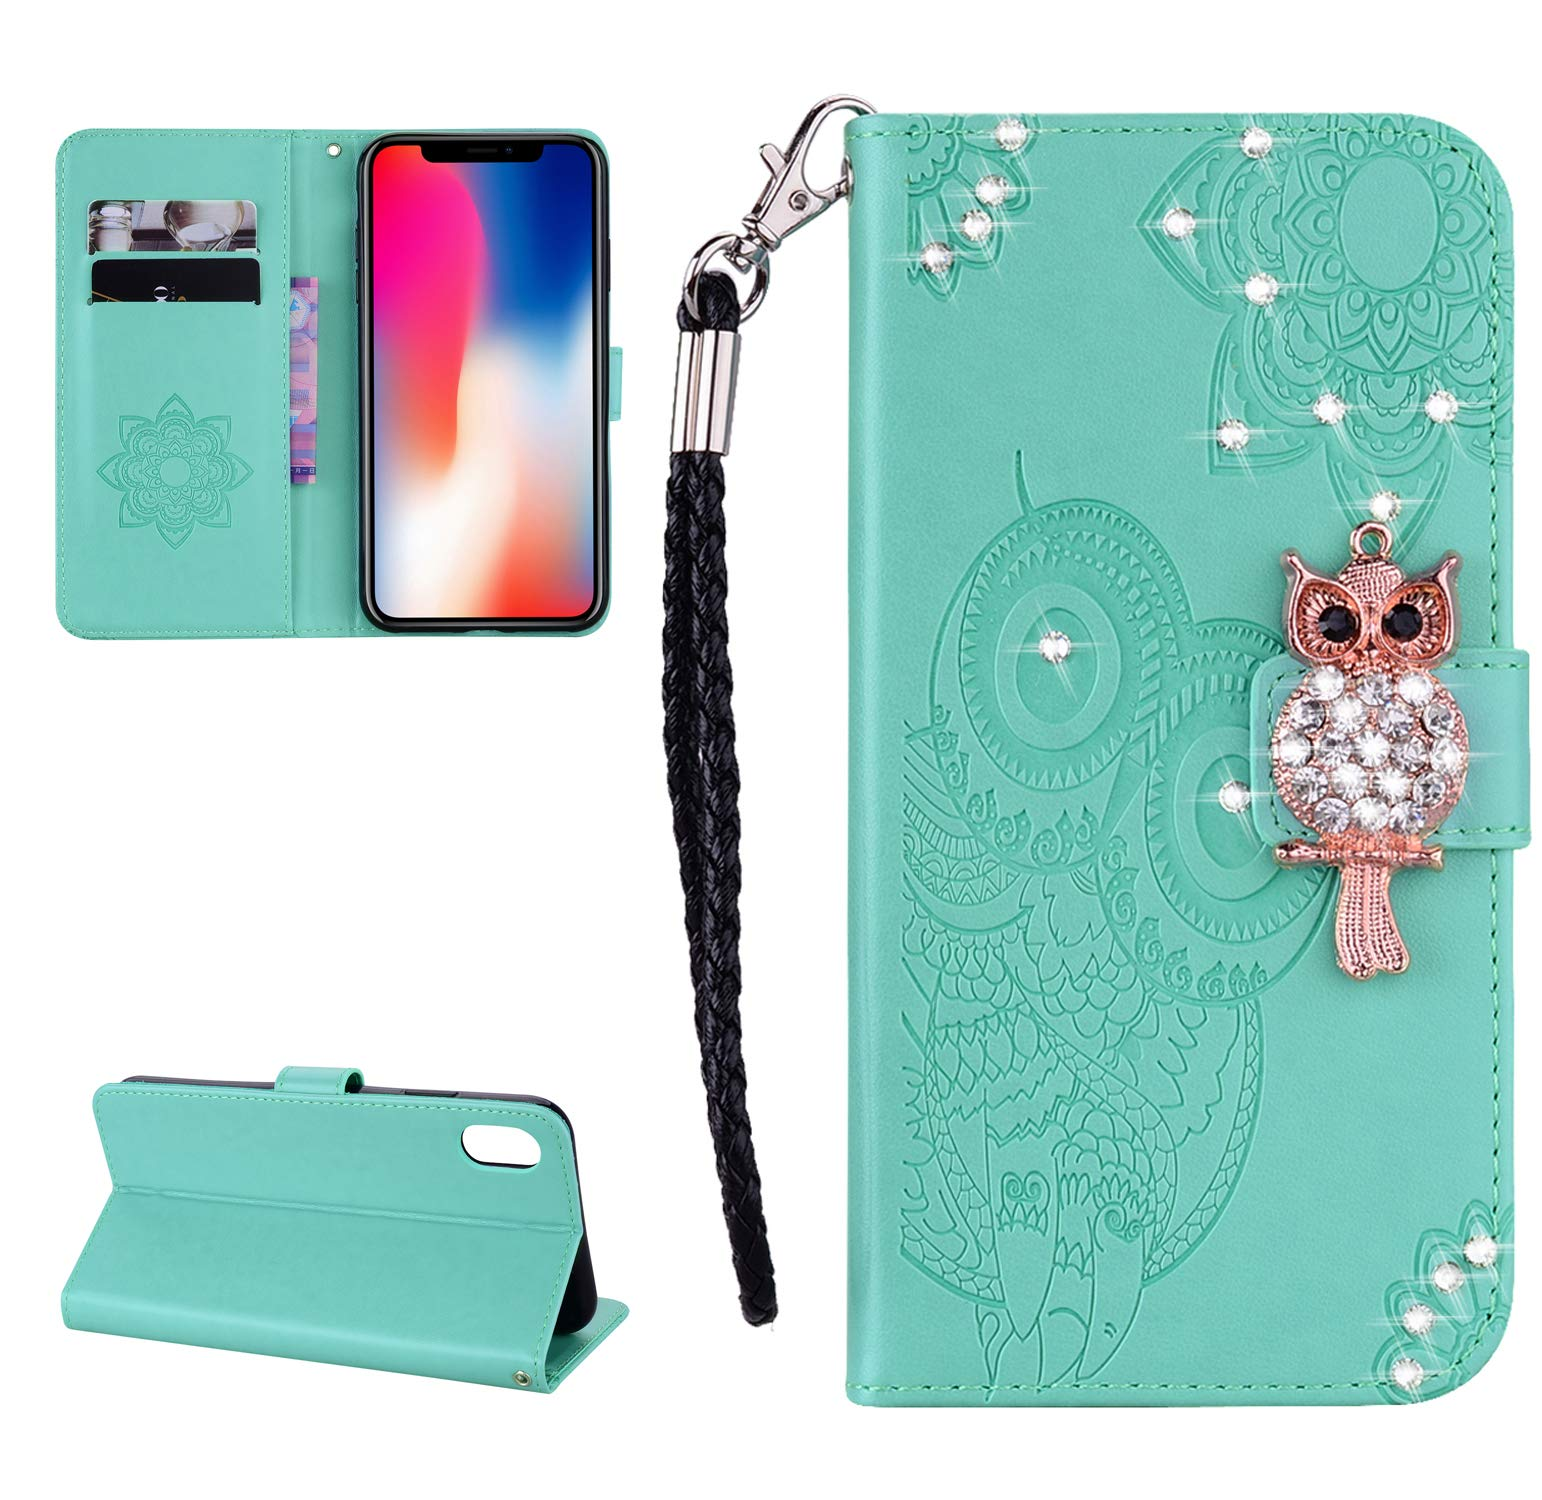 Strap Diamond Wallet Case for iPhone XR 6.1 Inch,Aoucase Luxury 3D Owl Bling Gems Magnetic Cute Mandala Print PU Leather Soft TPU Stand Flip Case with Black Dual-use Pen - Green